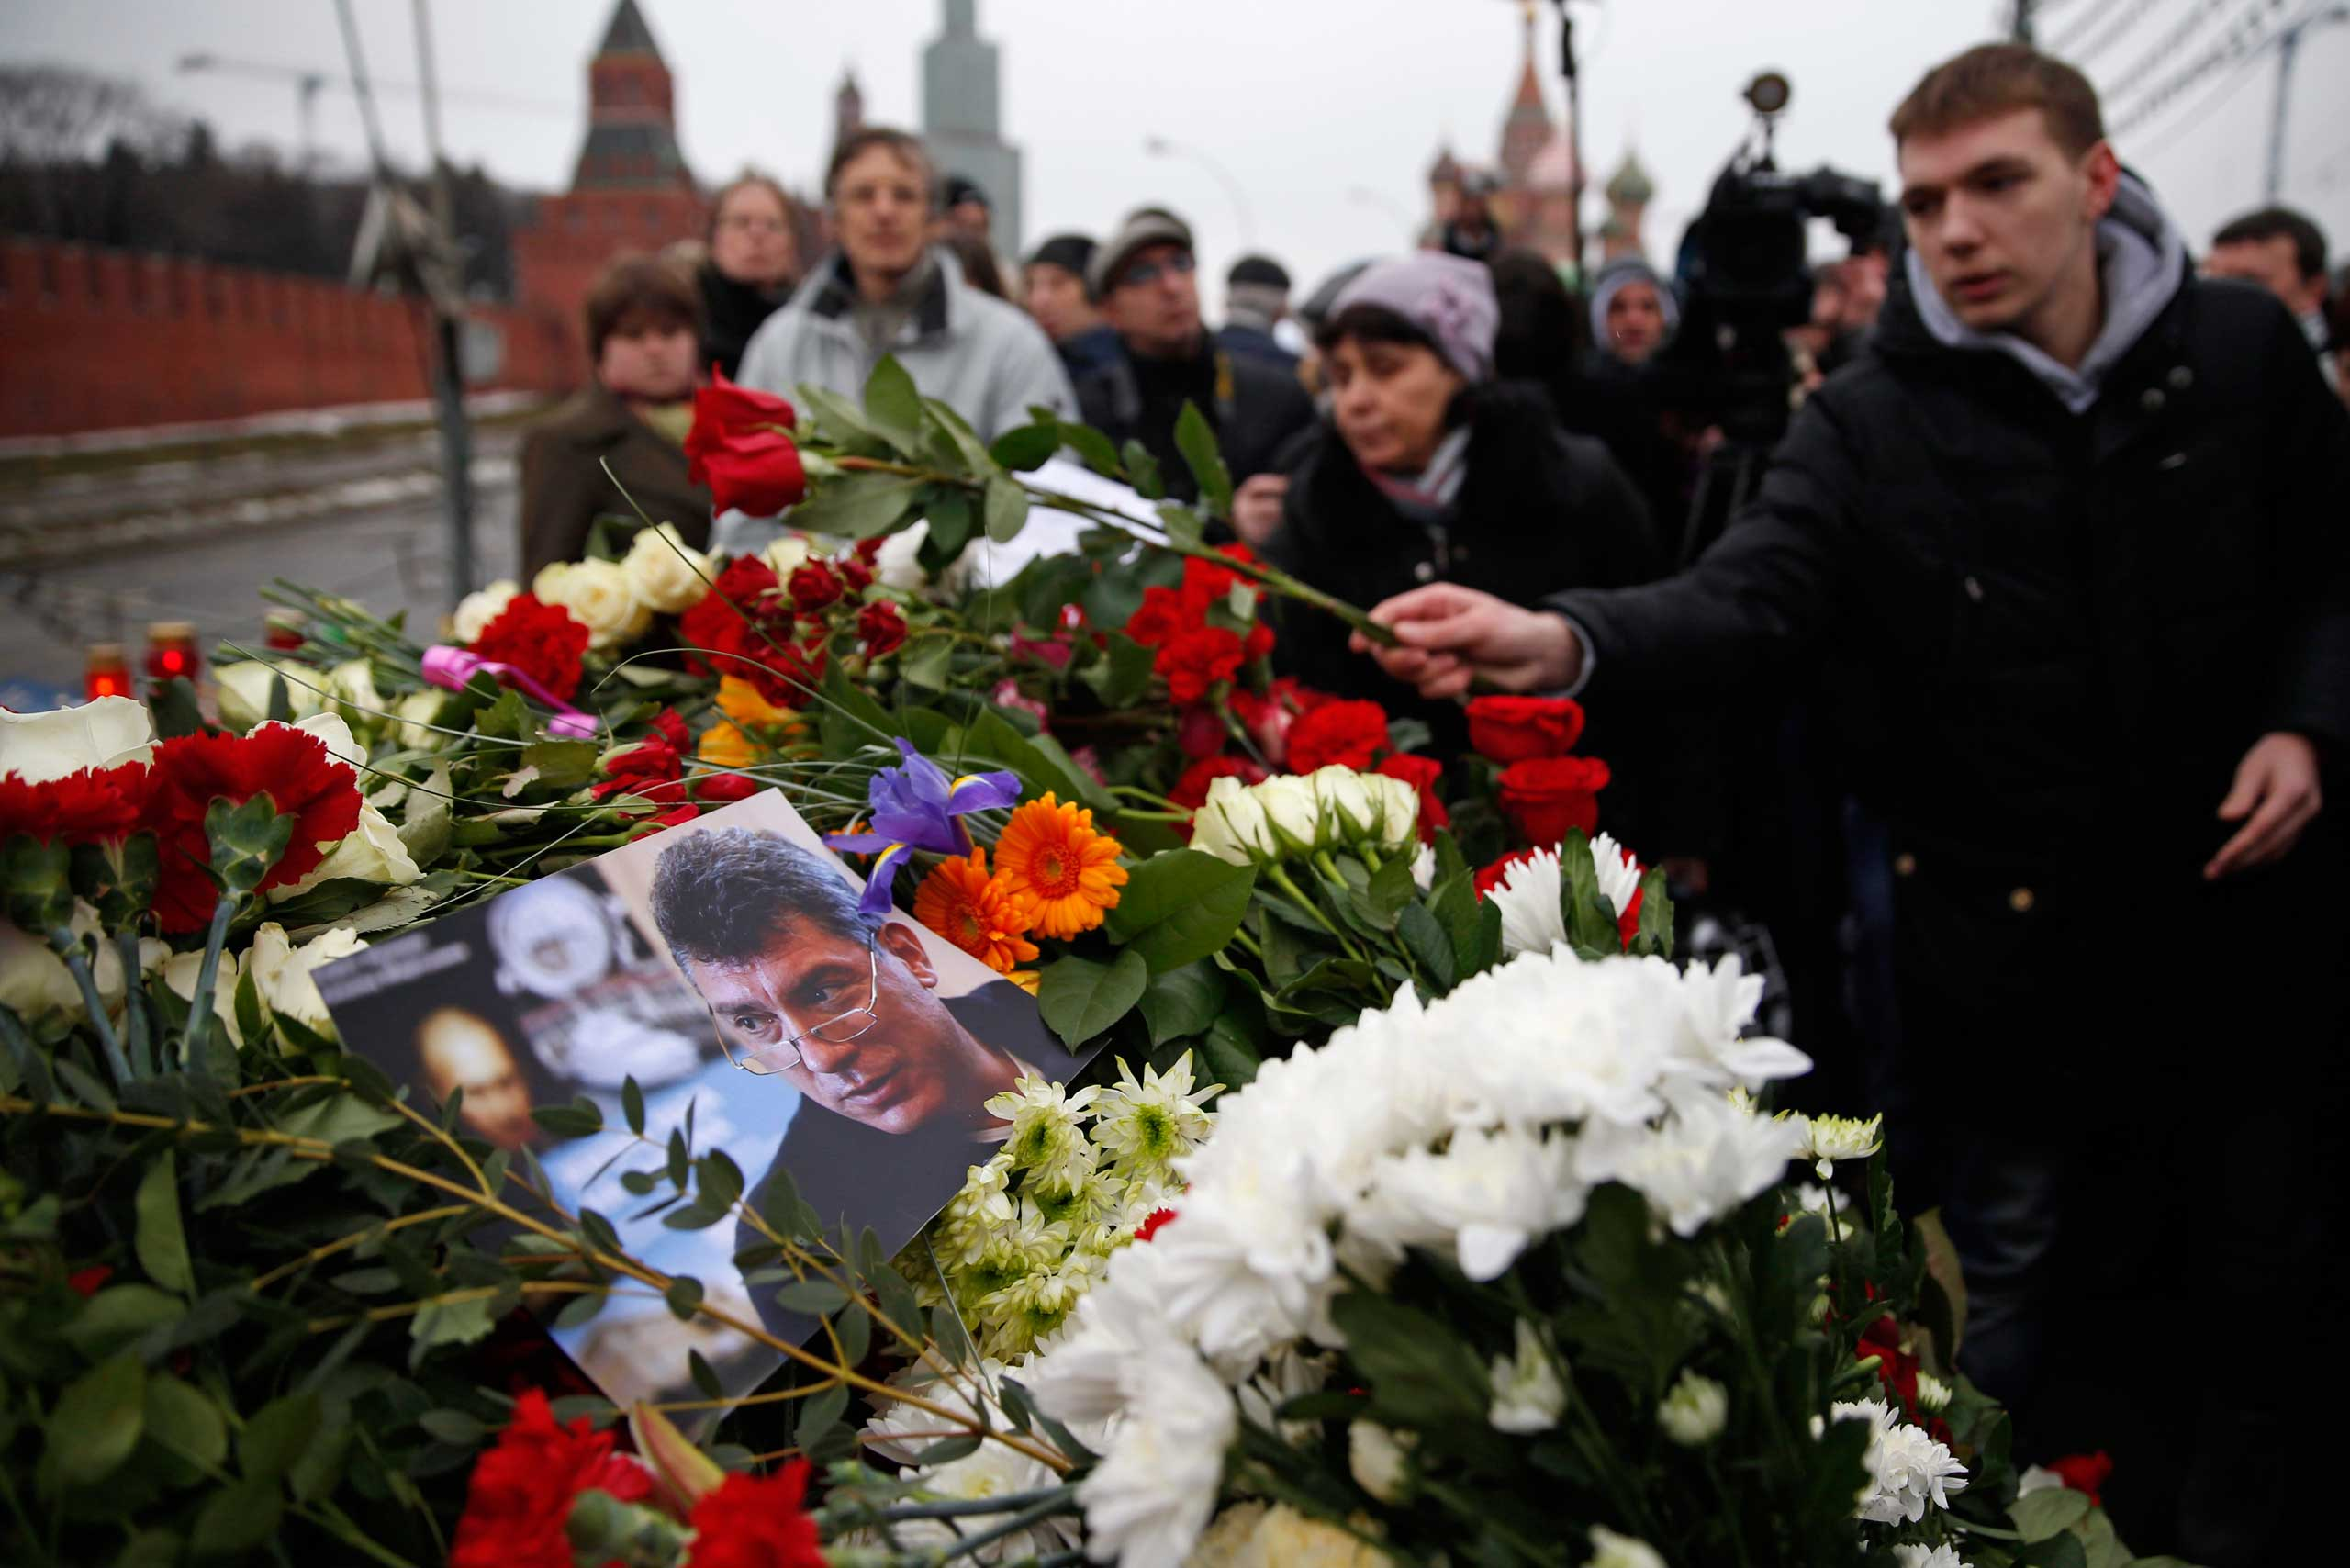 People lay flowers at the place where Boris Nemtsov, a charismatic Russian opposition leader and sharp critic of President Vladimir Putin, was gunned down, at Red Square in Moscow, Russia, Feb. 28, 2015.